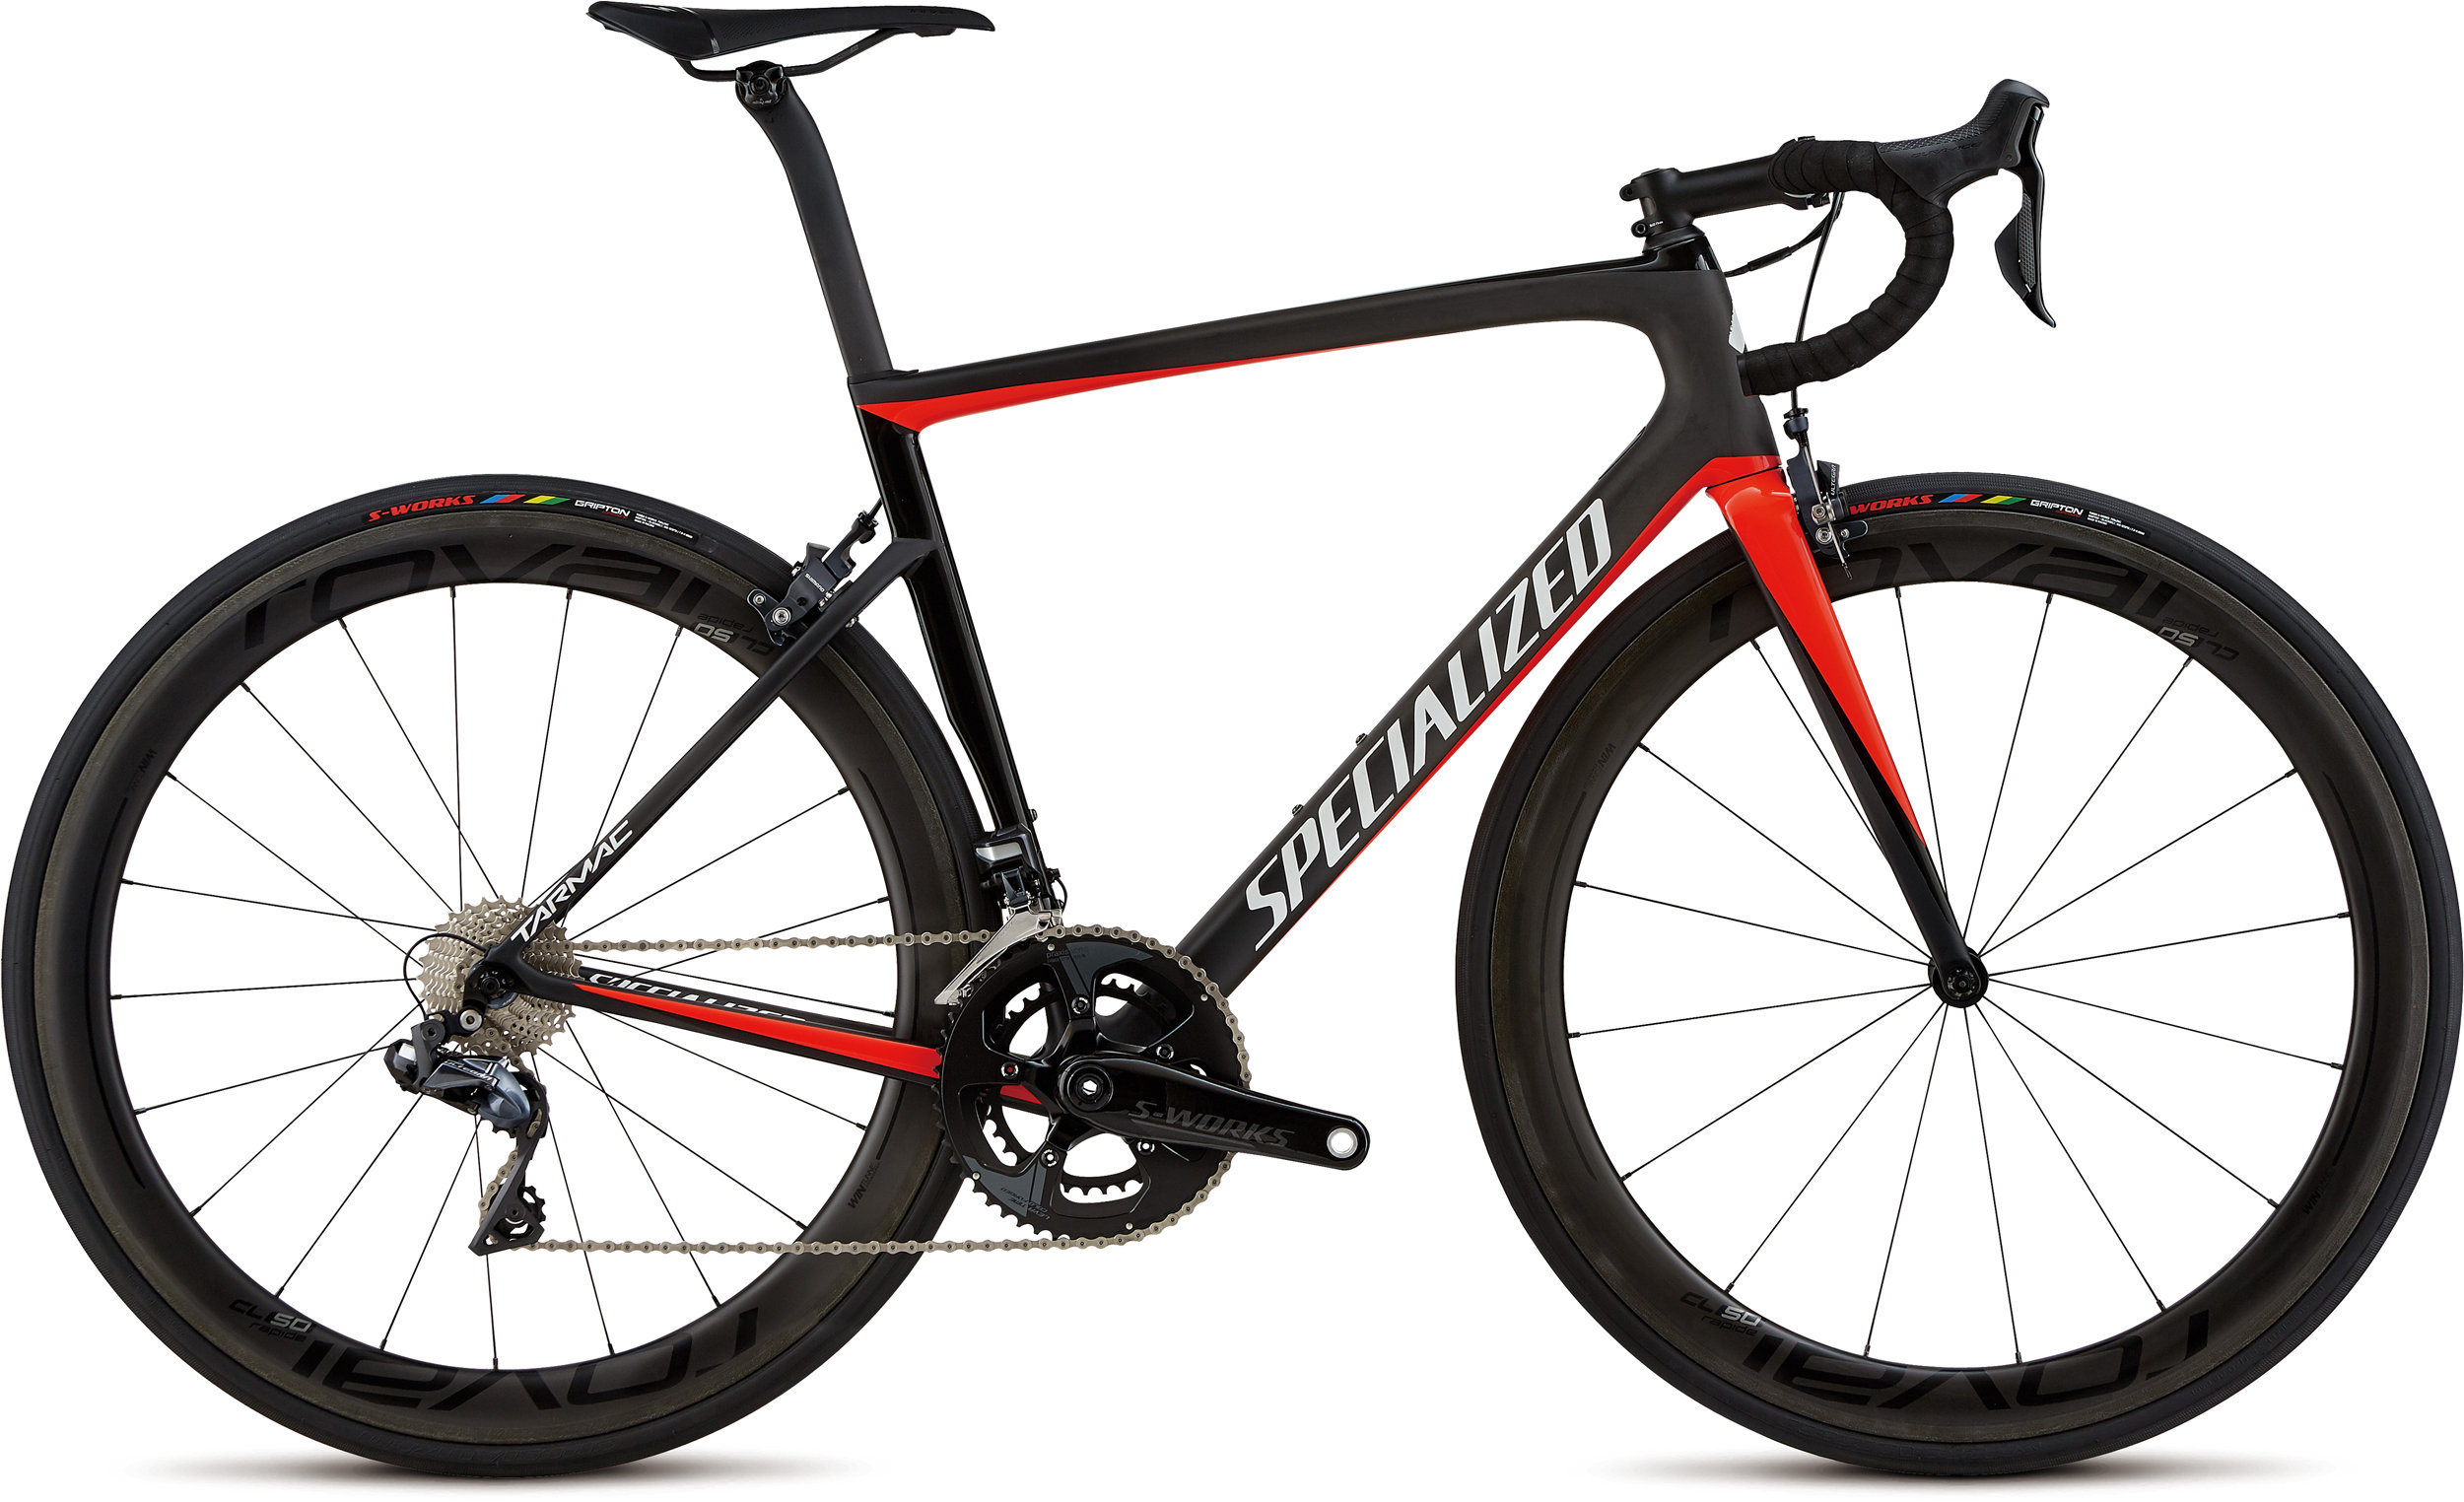 Specialized Men´s Tarmac Pro Carbon/Gloss Rkt Red/Tarmac Blk/Metallic Wht Slver 58 - Randen Bike GmbH